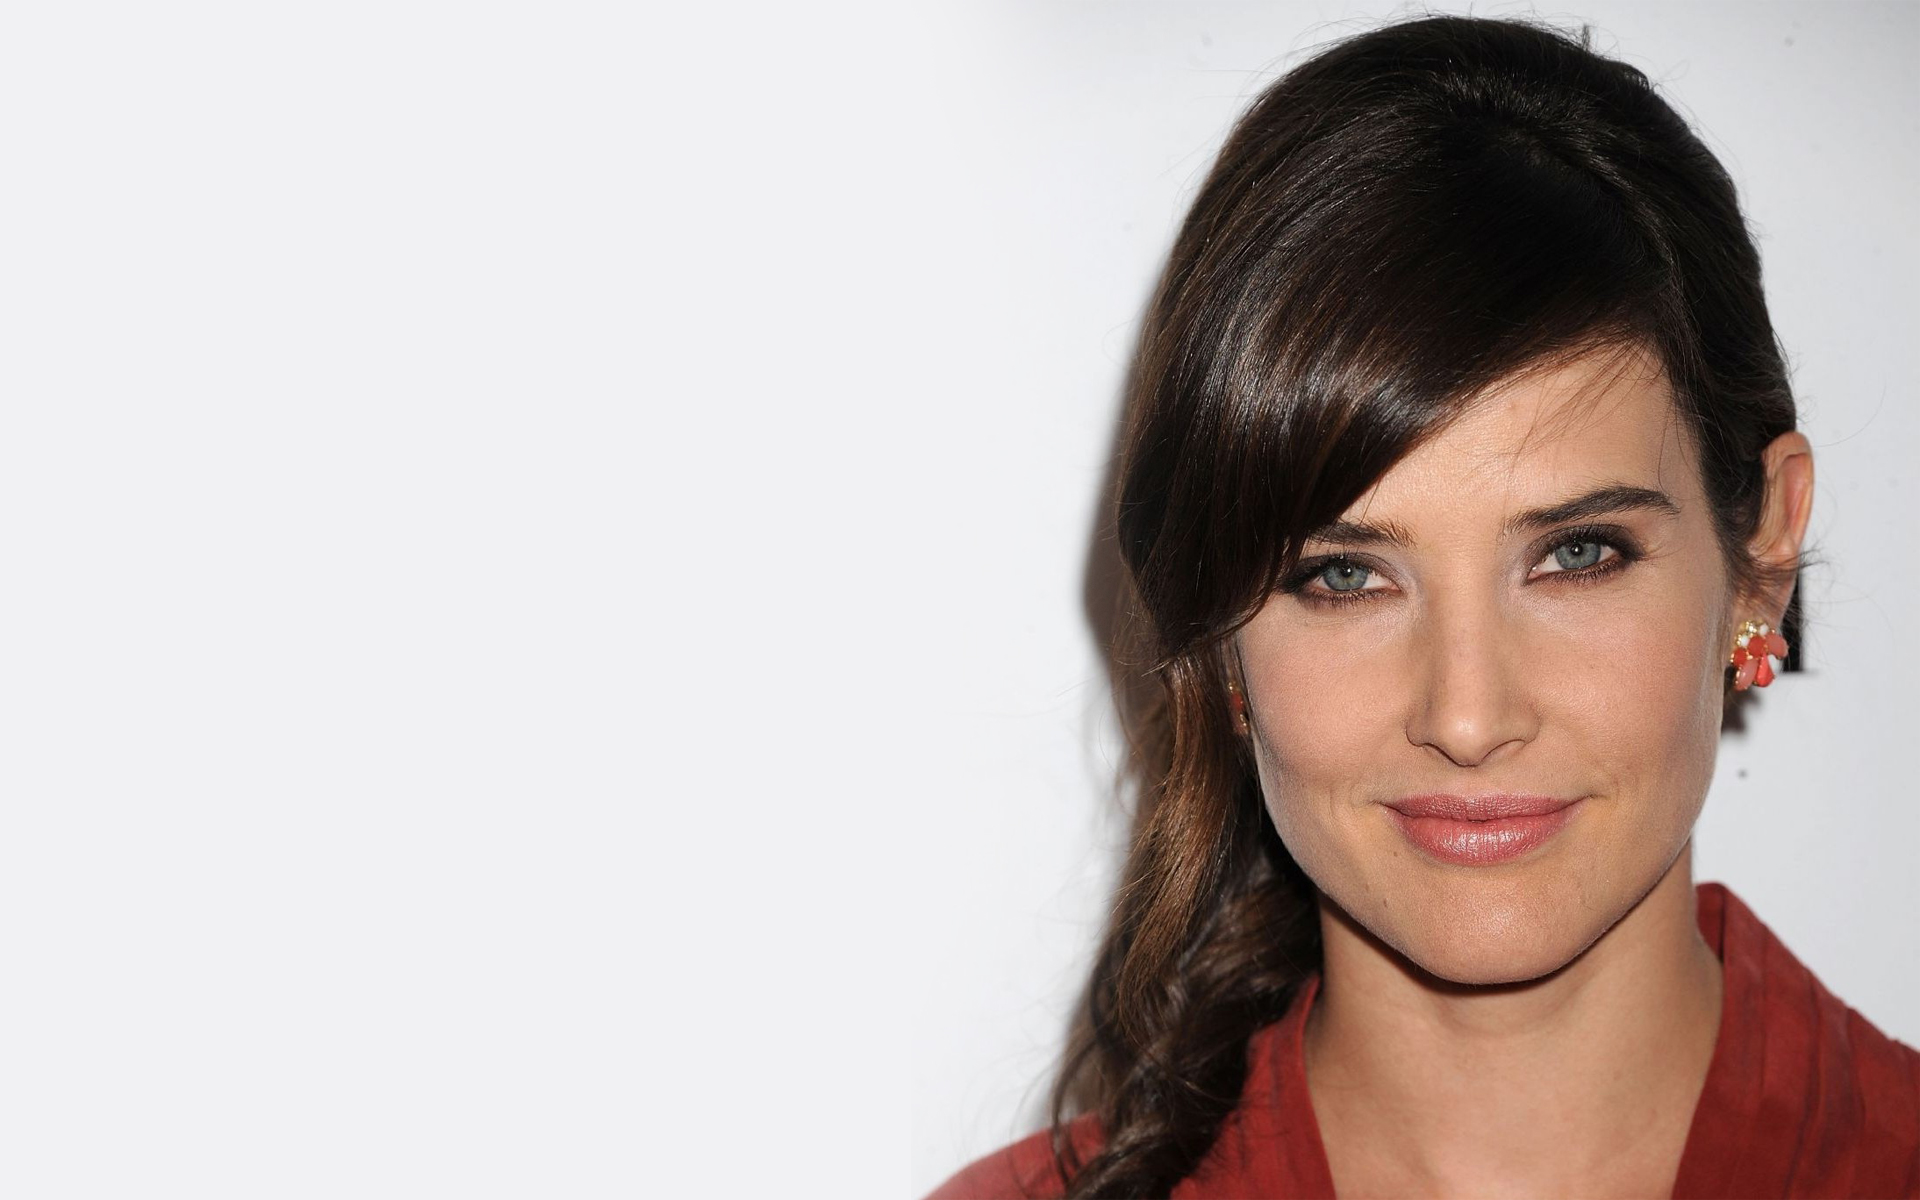 cobie smulders wallpapers - photo #23